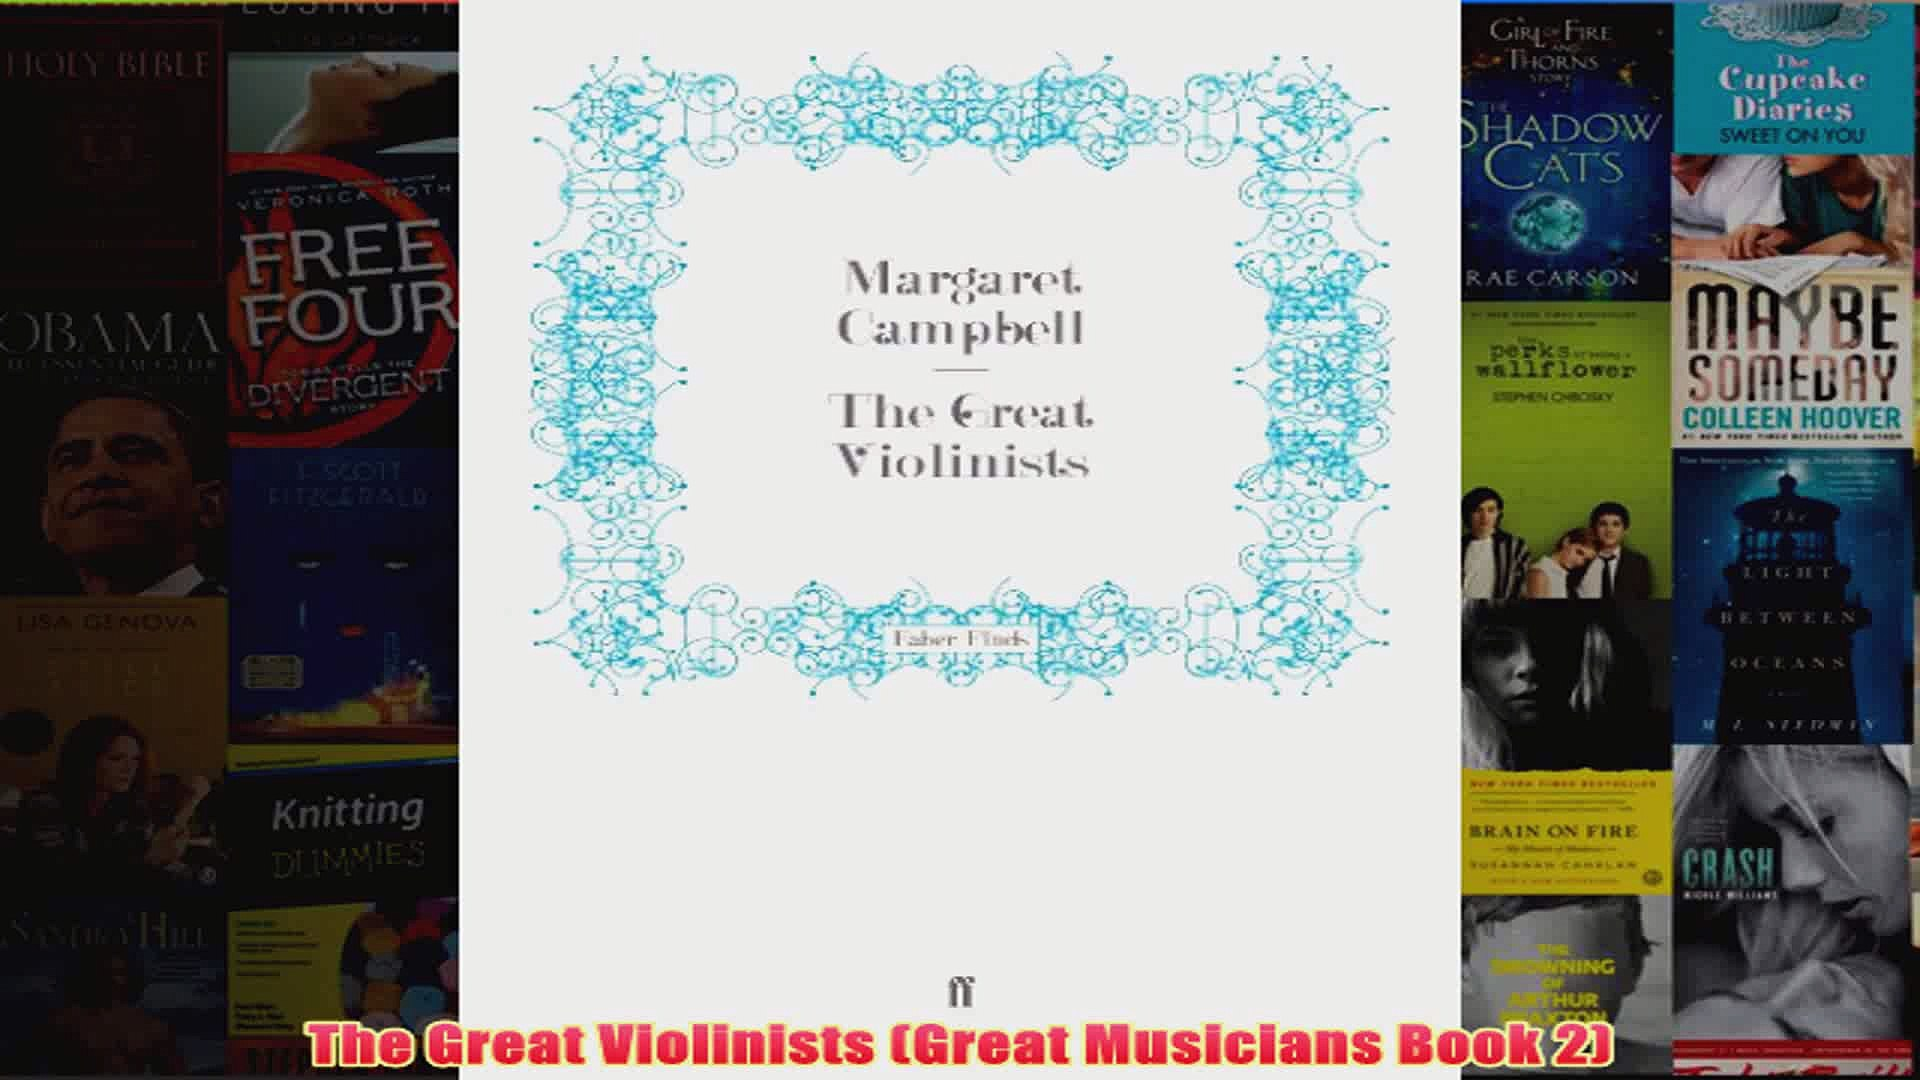 The Great Violinists Great Musicians Book 2